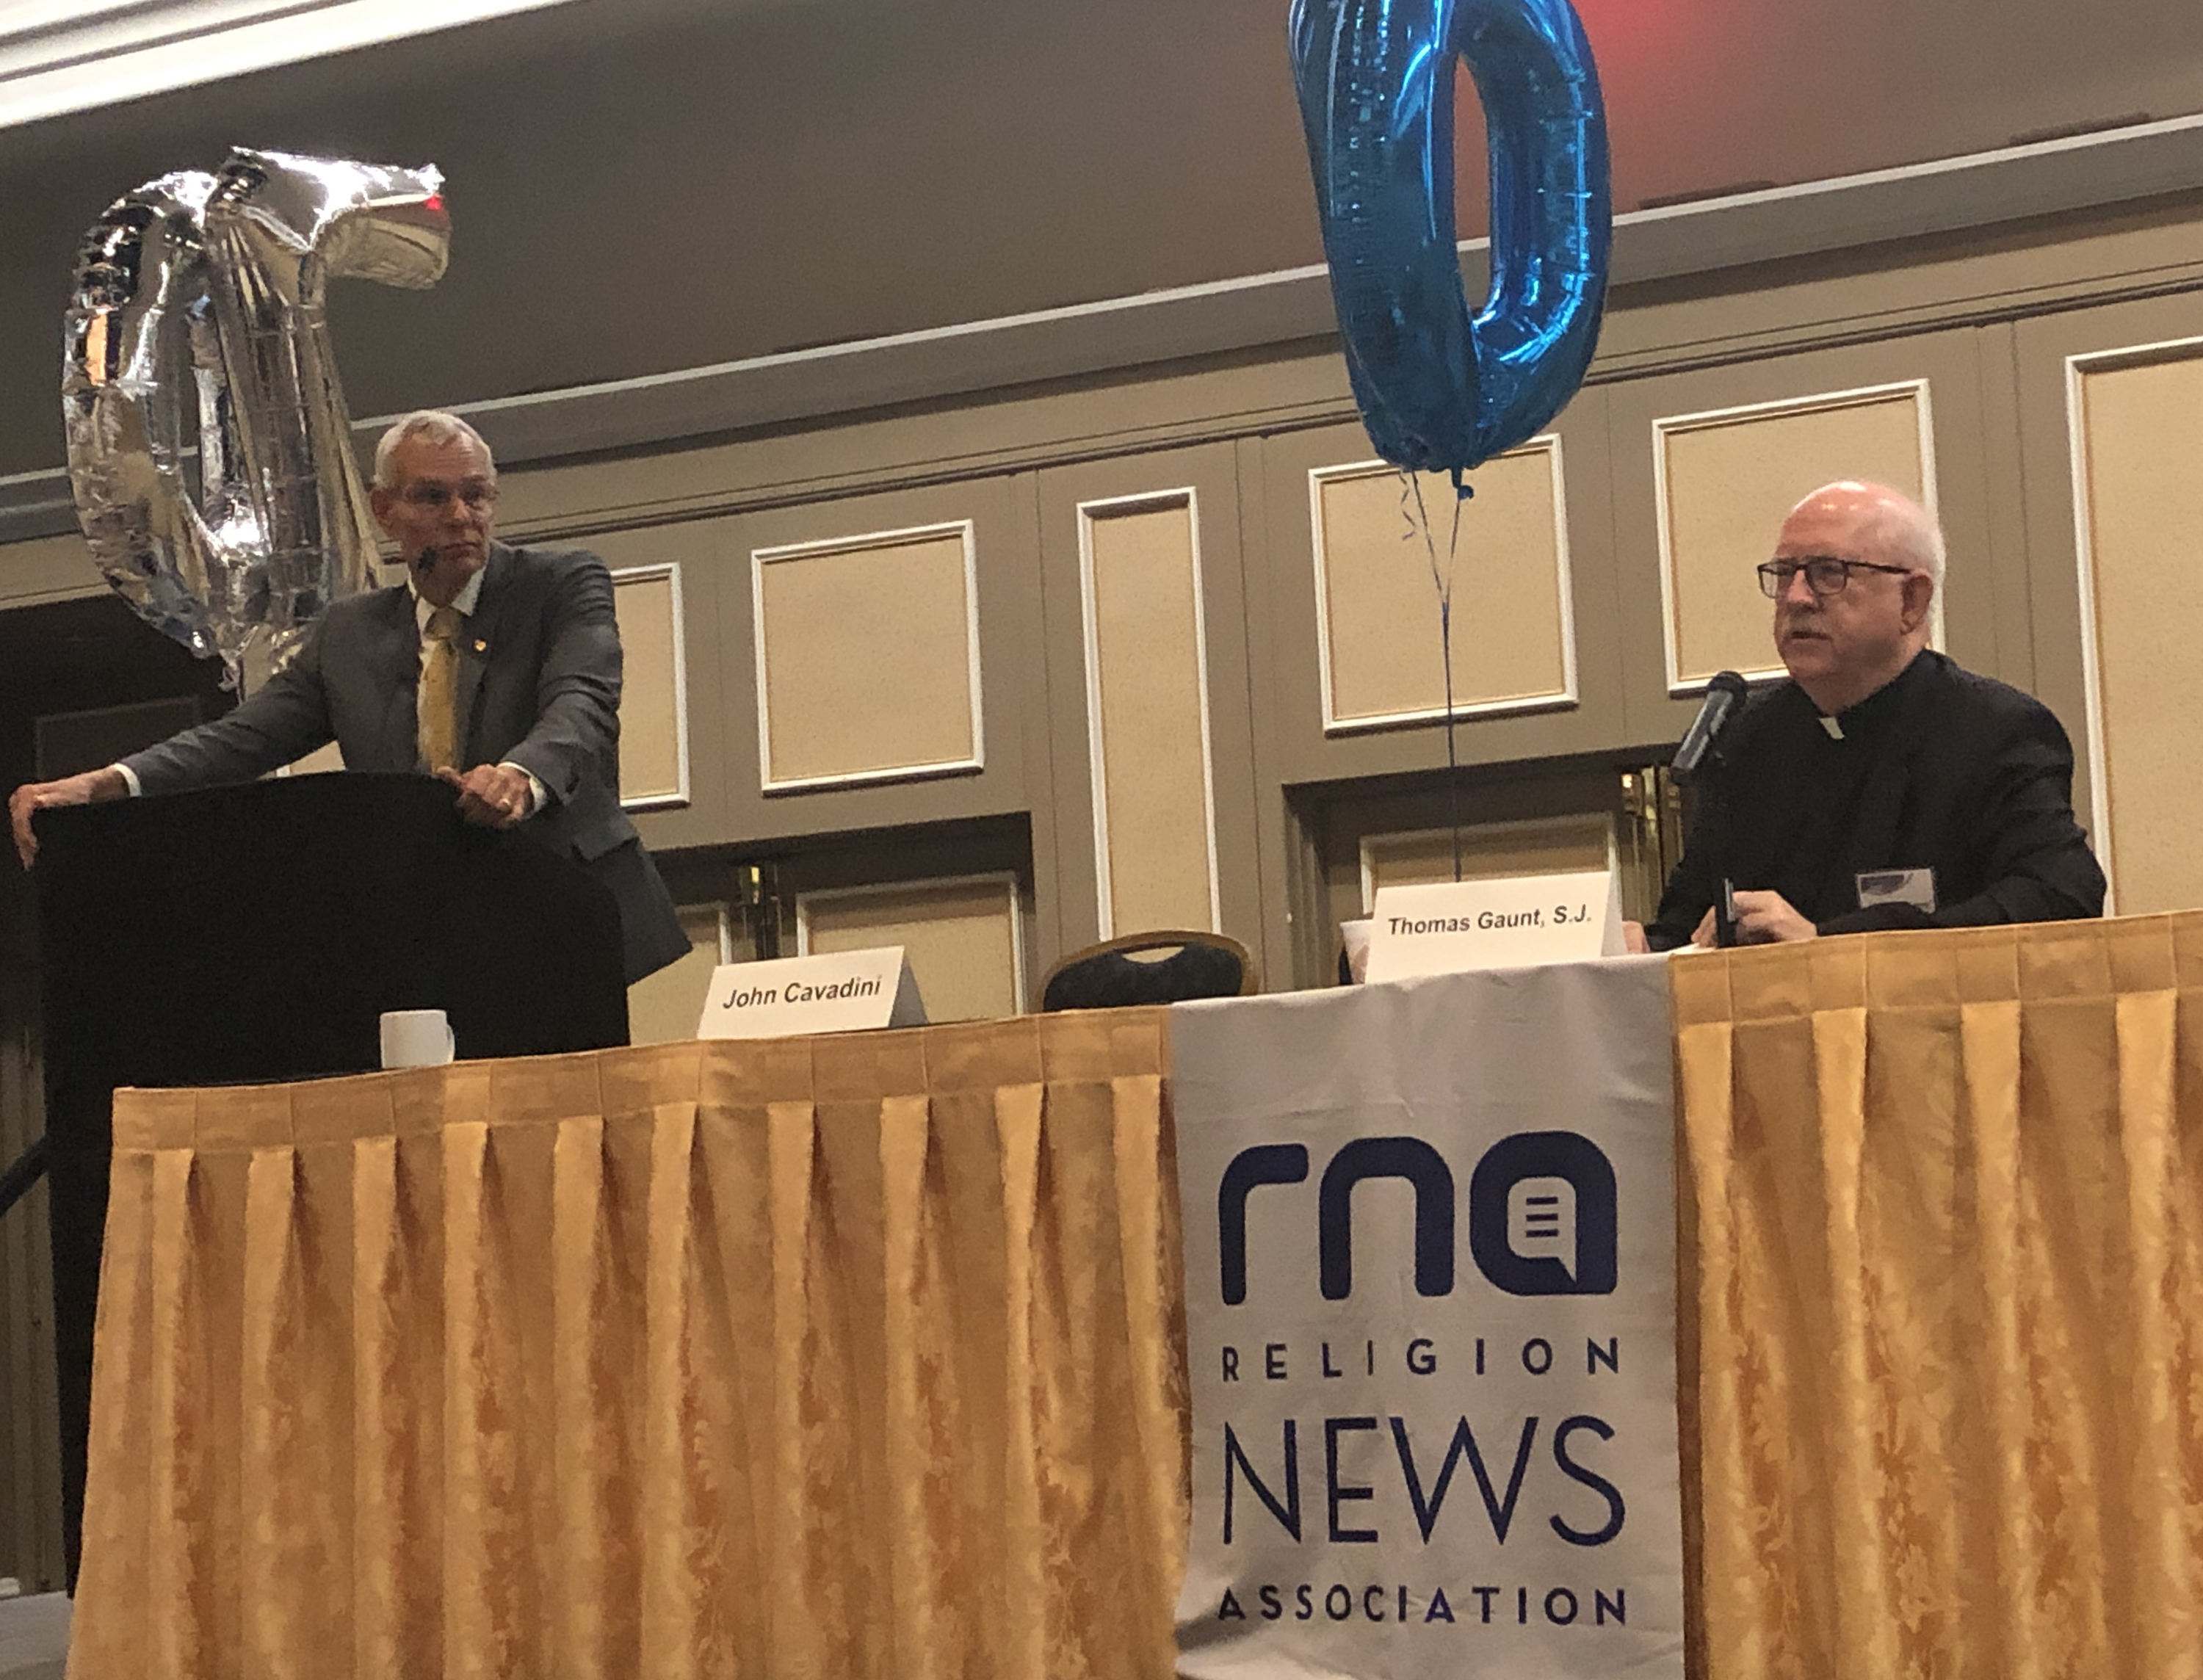 University of Notre Dame professor John Cavadini and Jesuit Father Thomas Gaunt of the Center for Applied Research in the Apostolate took questions from the audience Sept. 21, 2019, during the Religion News Association conference in Las Vegas. They presented findings of their groundbreaking study on sexual harassment in seminaries in the U.S